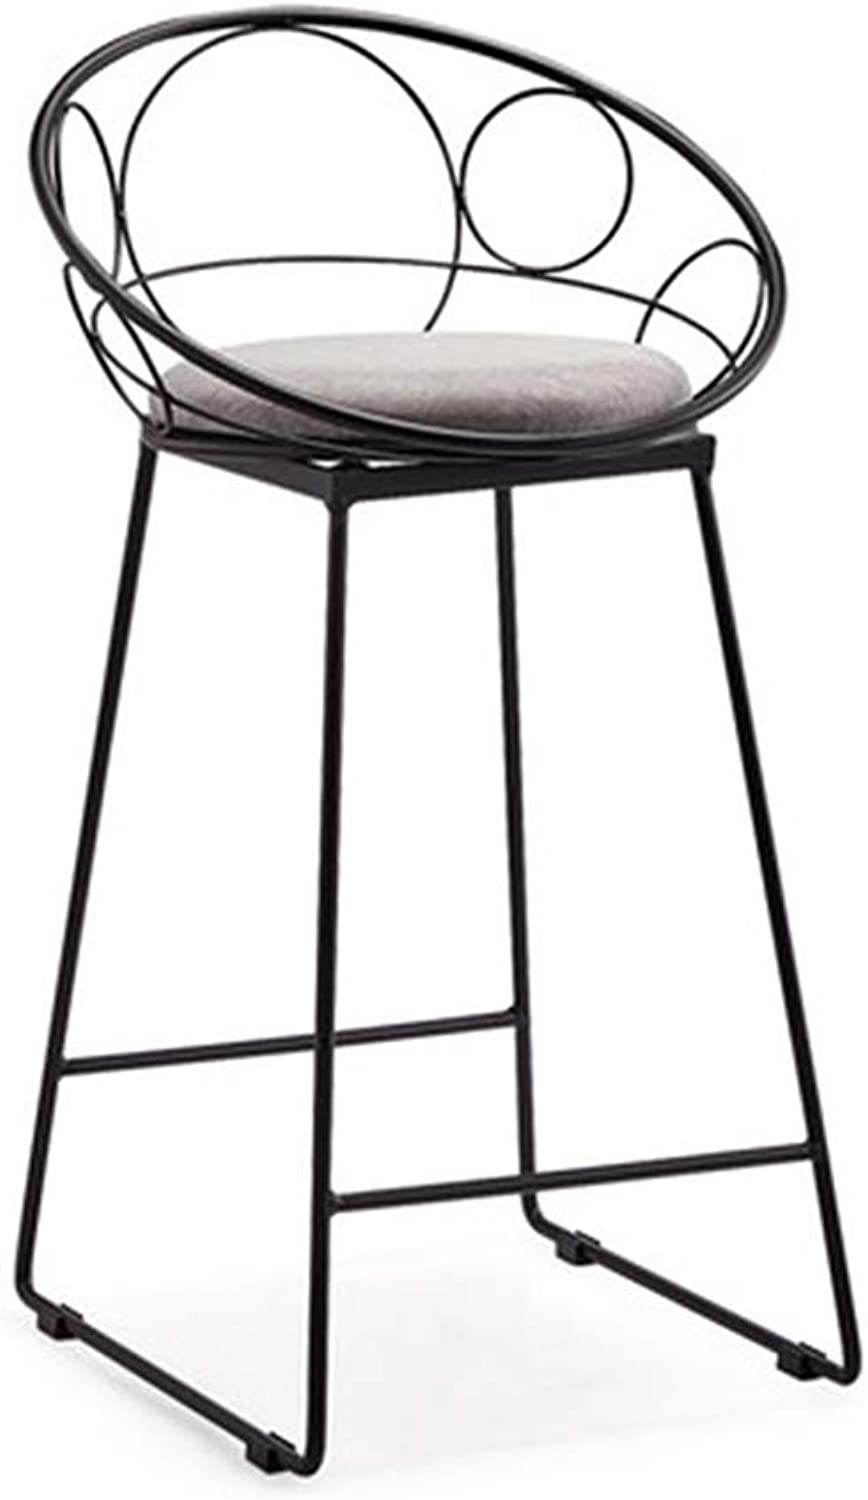 ZUOANCHEN Barstools Retro Dining Chair Metal Vintage Rustic Designer Kitchen Pub Bar Designer Stool Industrial Style Linen Breathable Cushion 2 PCS (color   B, Size   One)